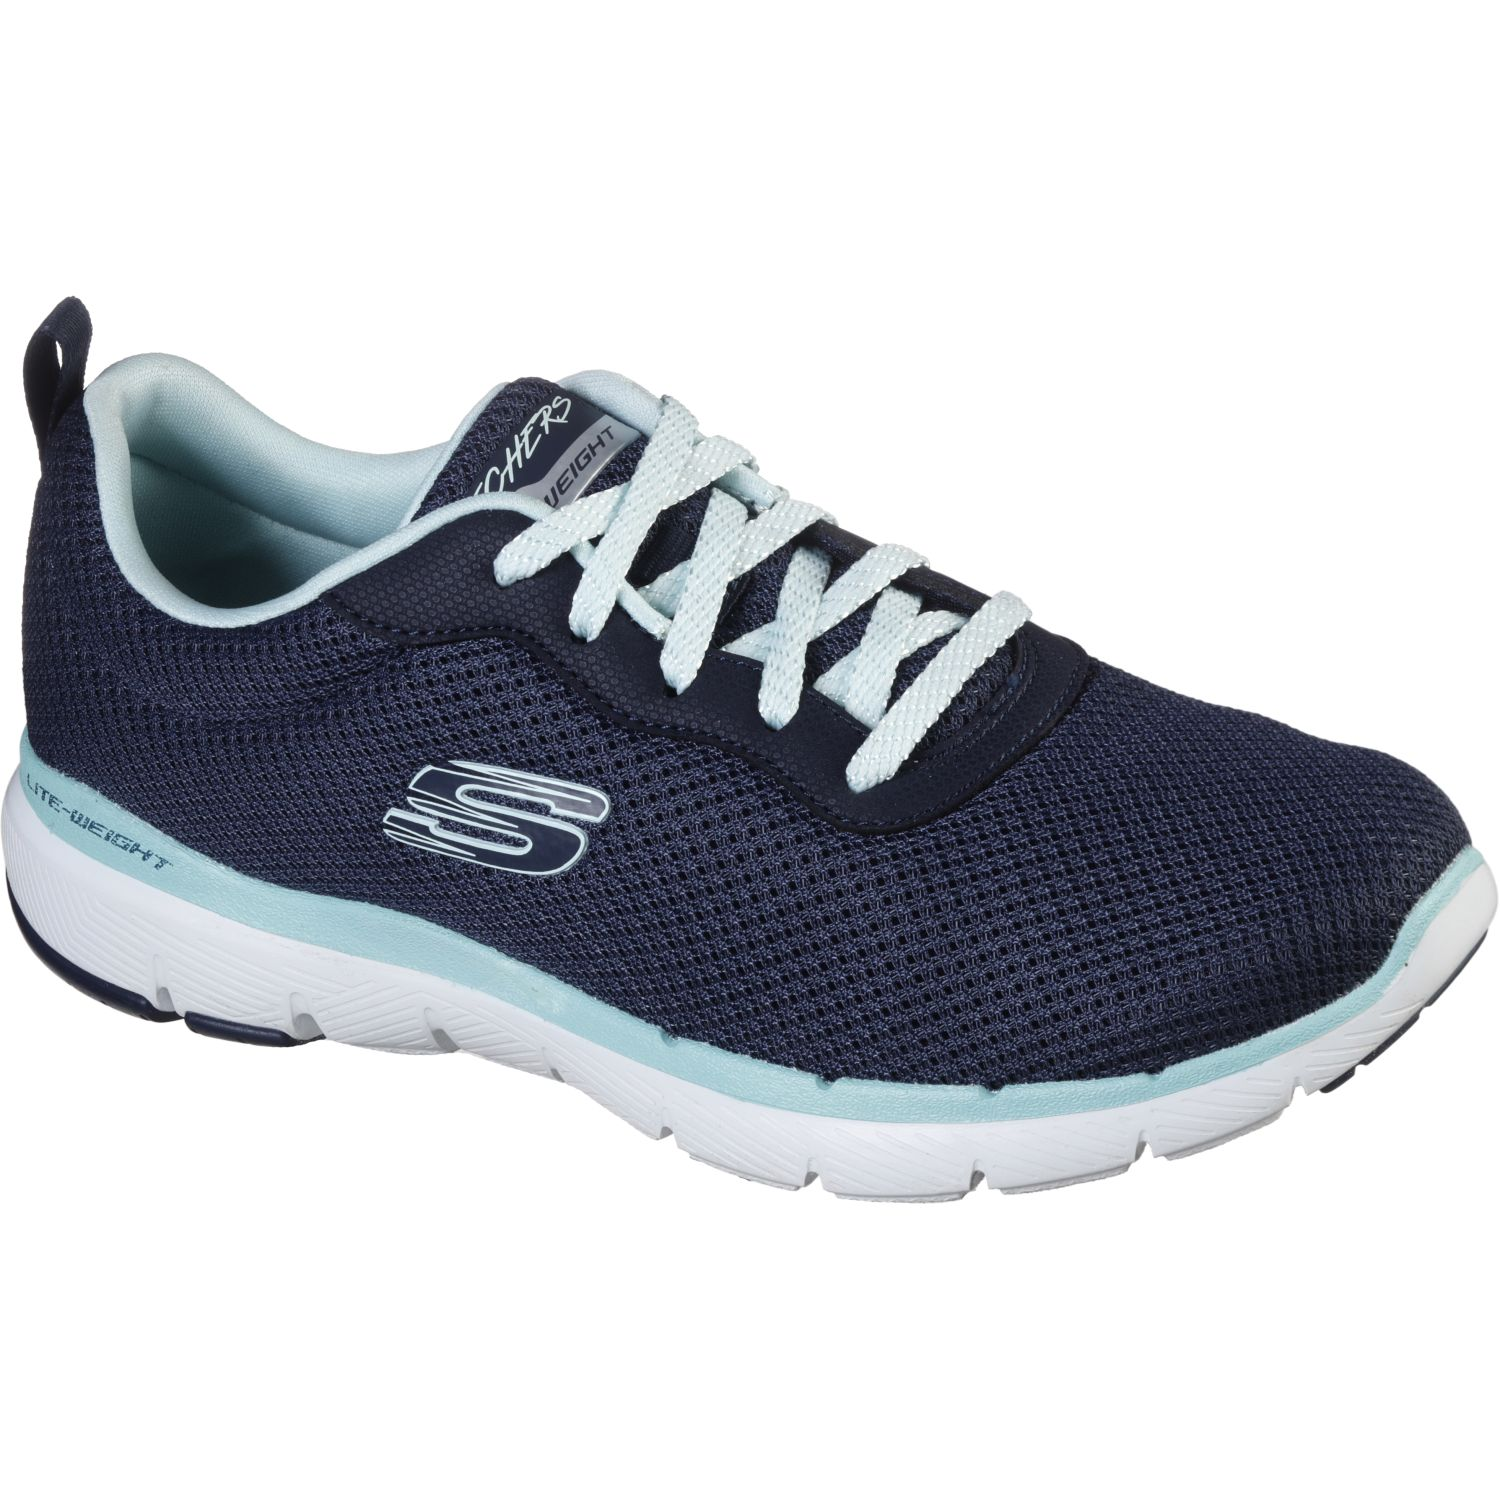 Skechers flex appeal 3.0 - first insight NAVY / AGUA Walking